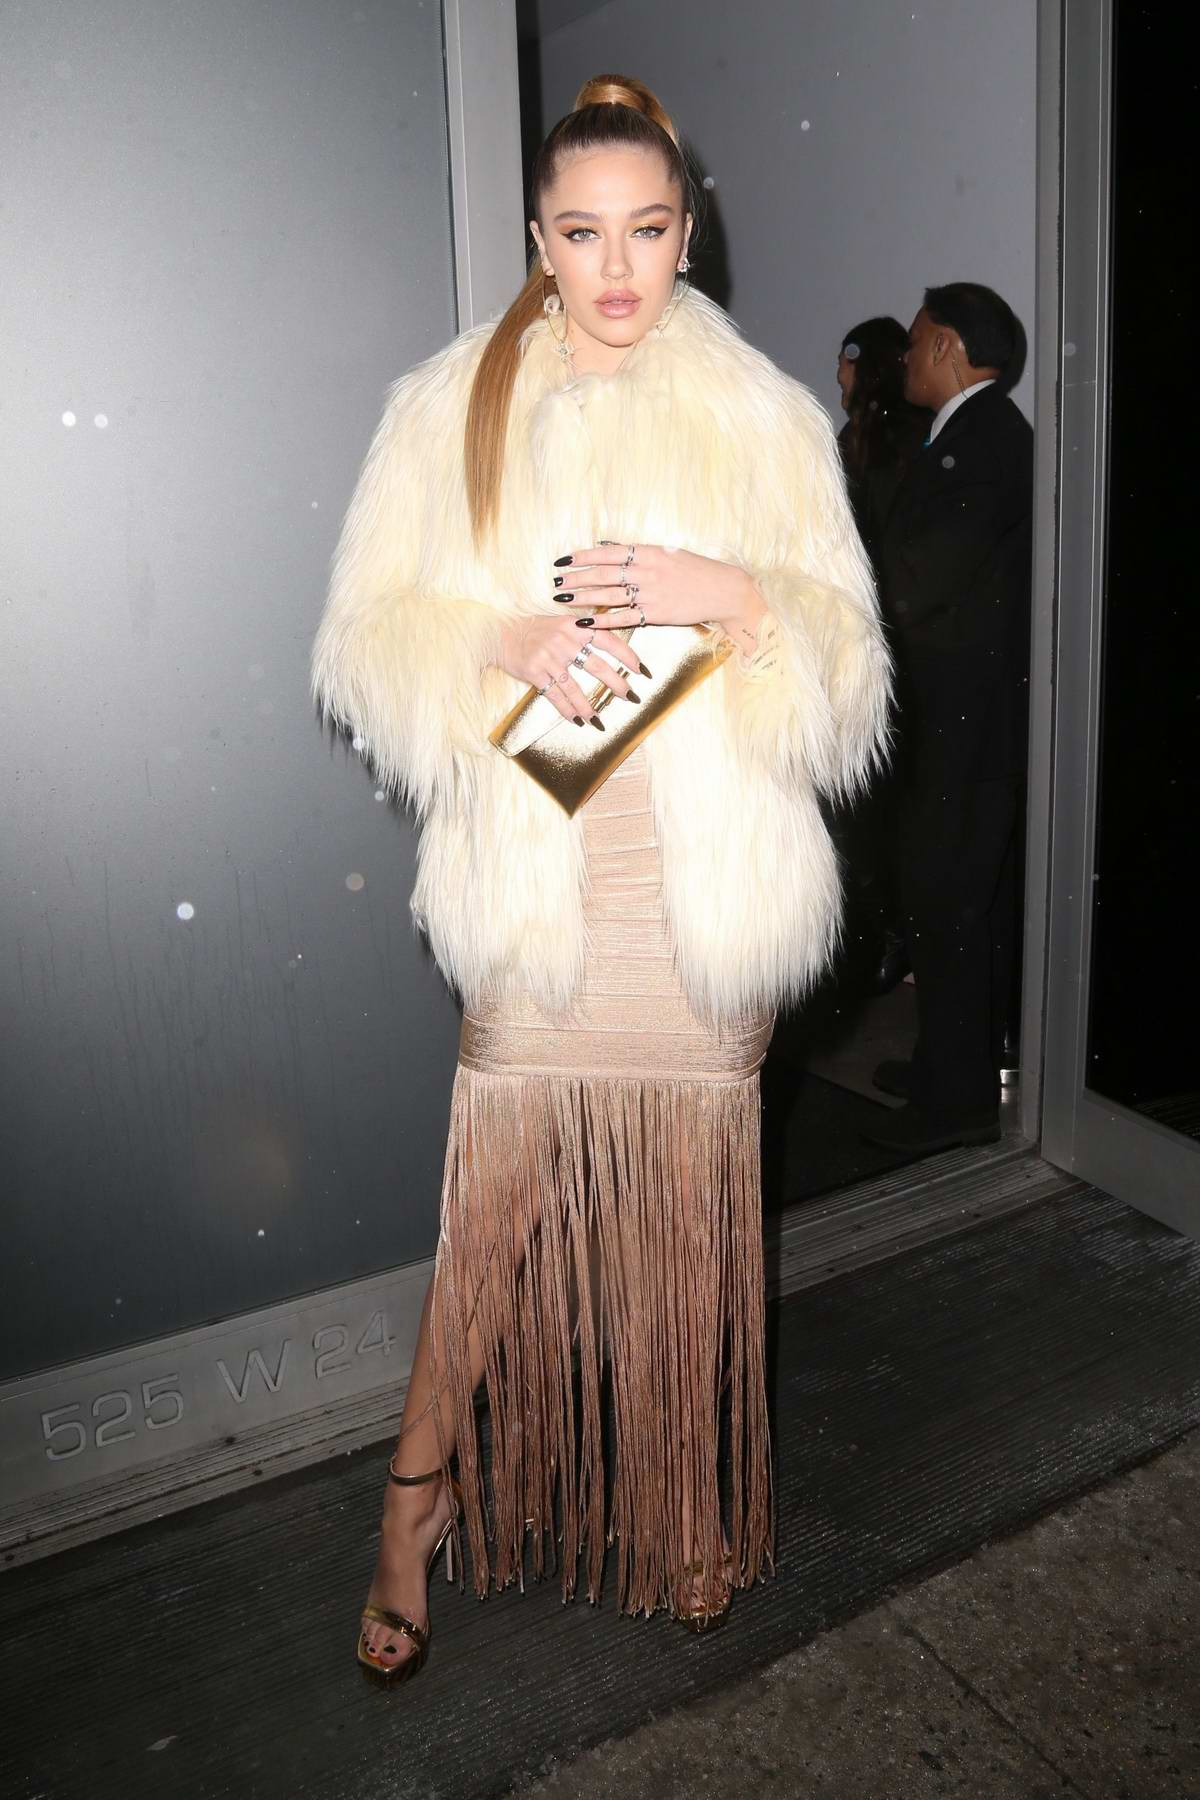 Delilah Belle Hamlin attends the Stuart Weitzman Party during New York Fashion Week in New York City